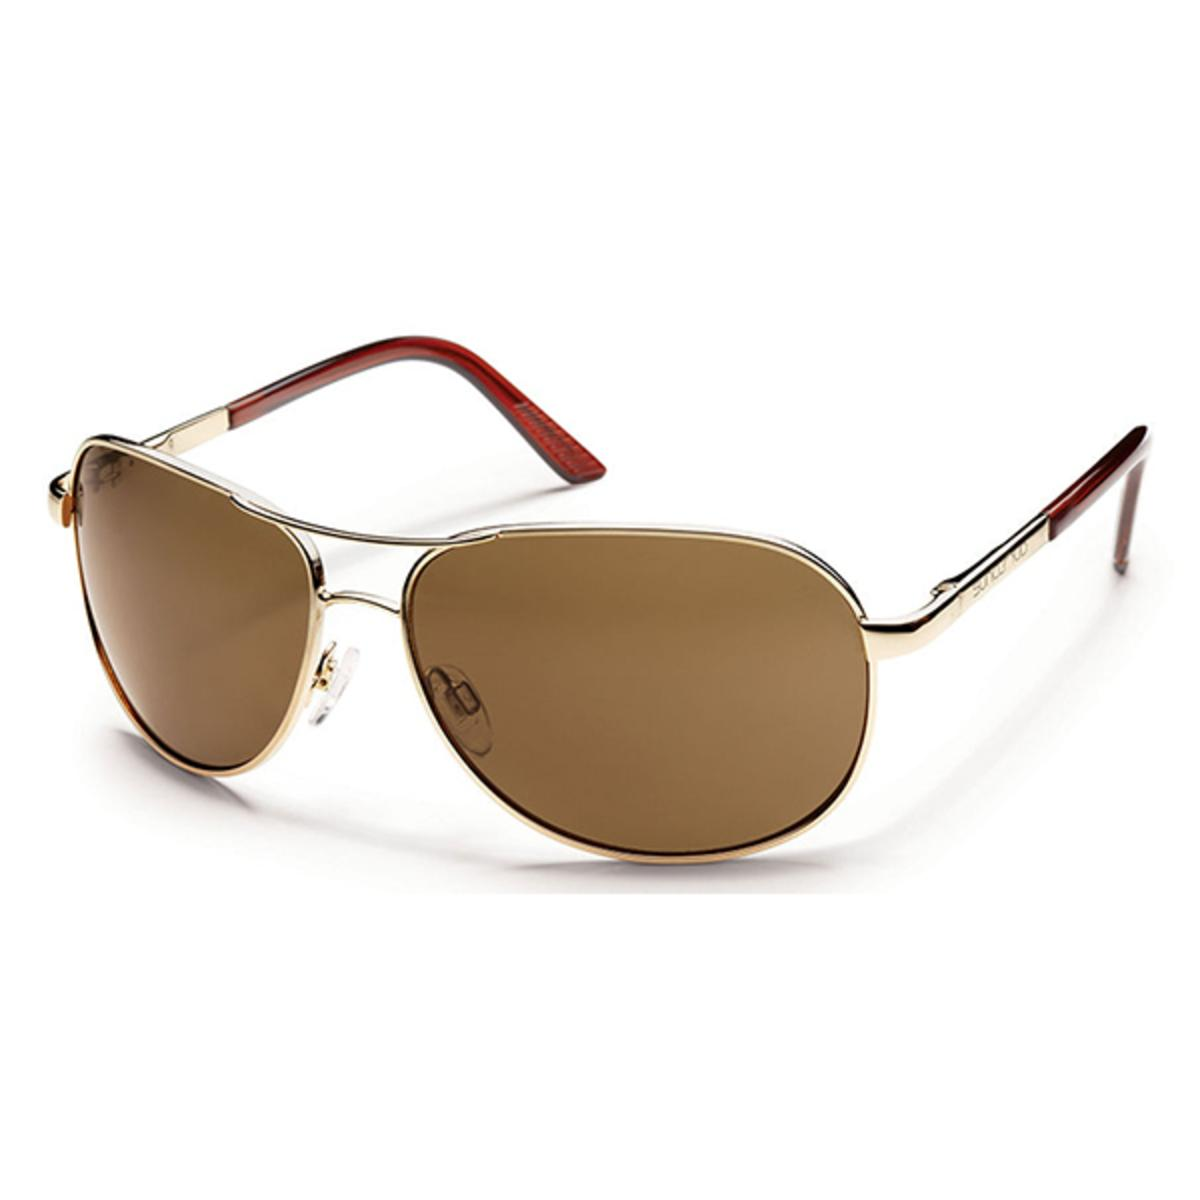 0a409e5ed44b7 Suncloud Metals Aviator Gold Polarized Brown Sunglasses - The Warming Store